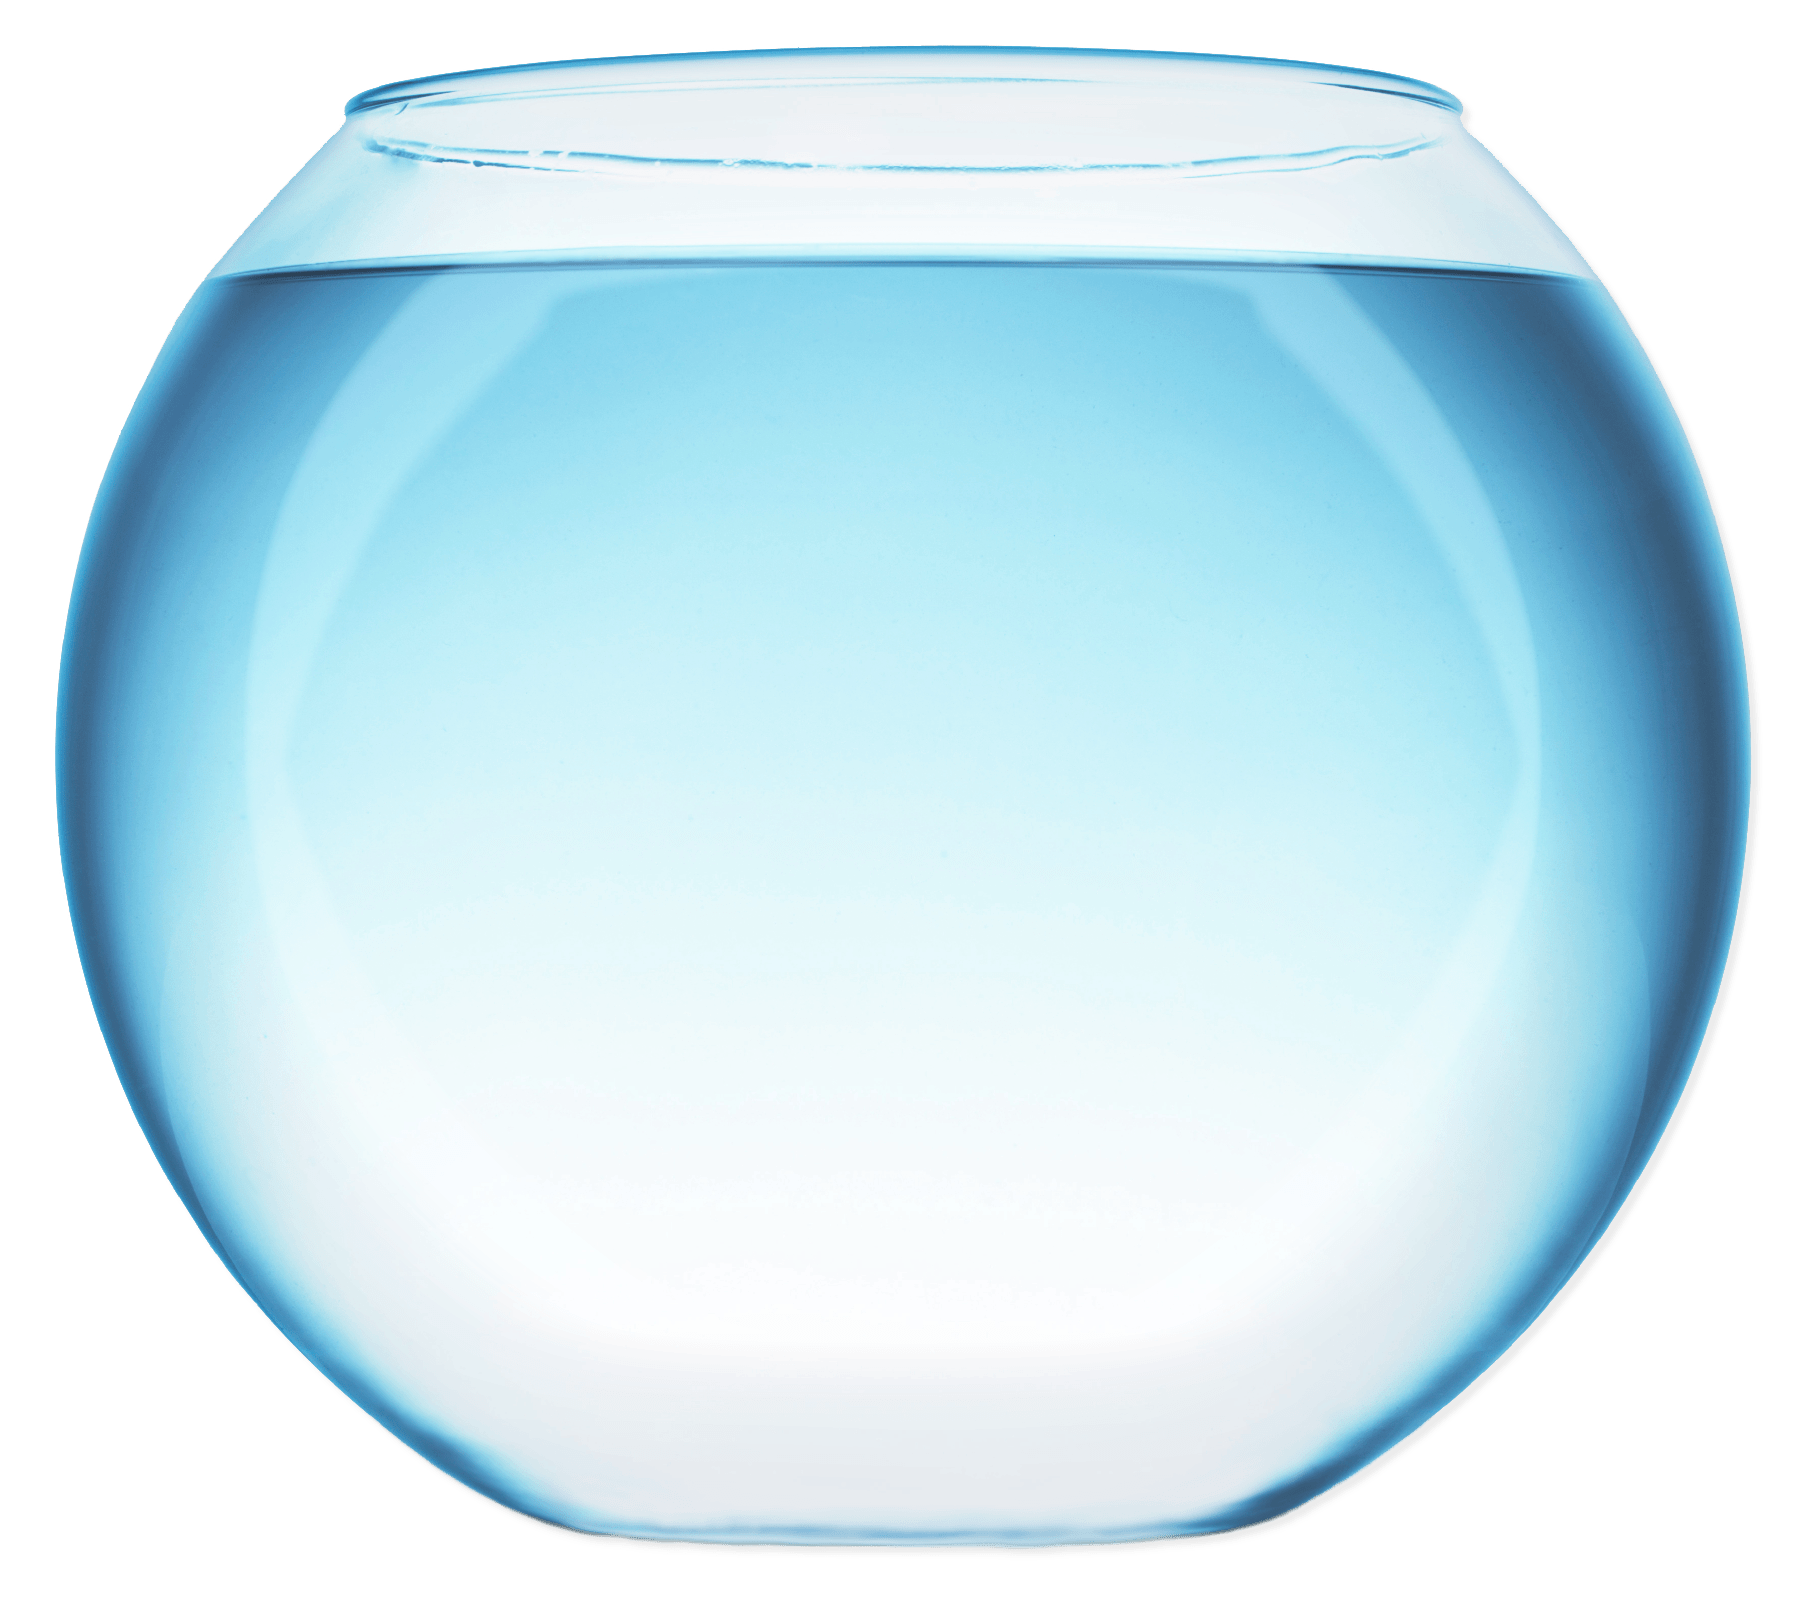 Clipart of a fish bowl transparent library Fish Bowl transparent PNG - StickPNG transparent library